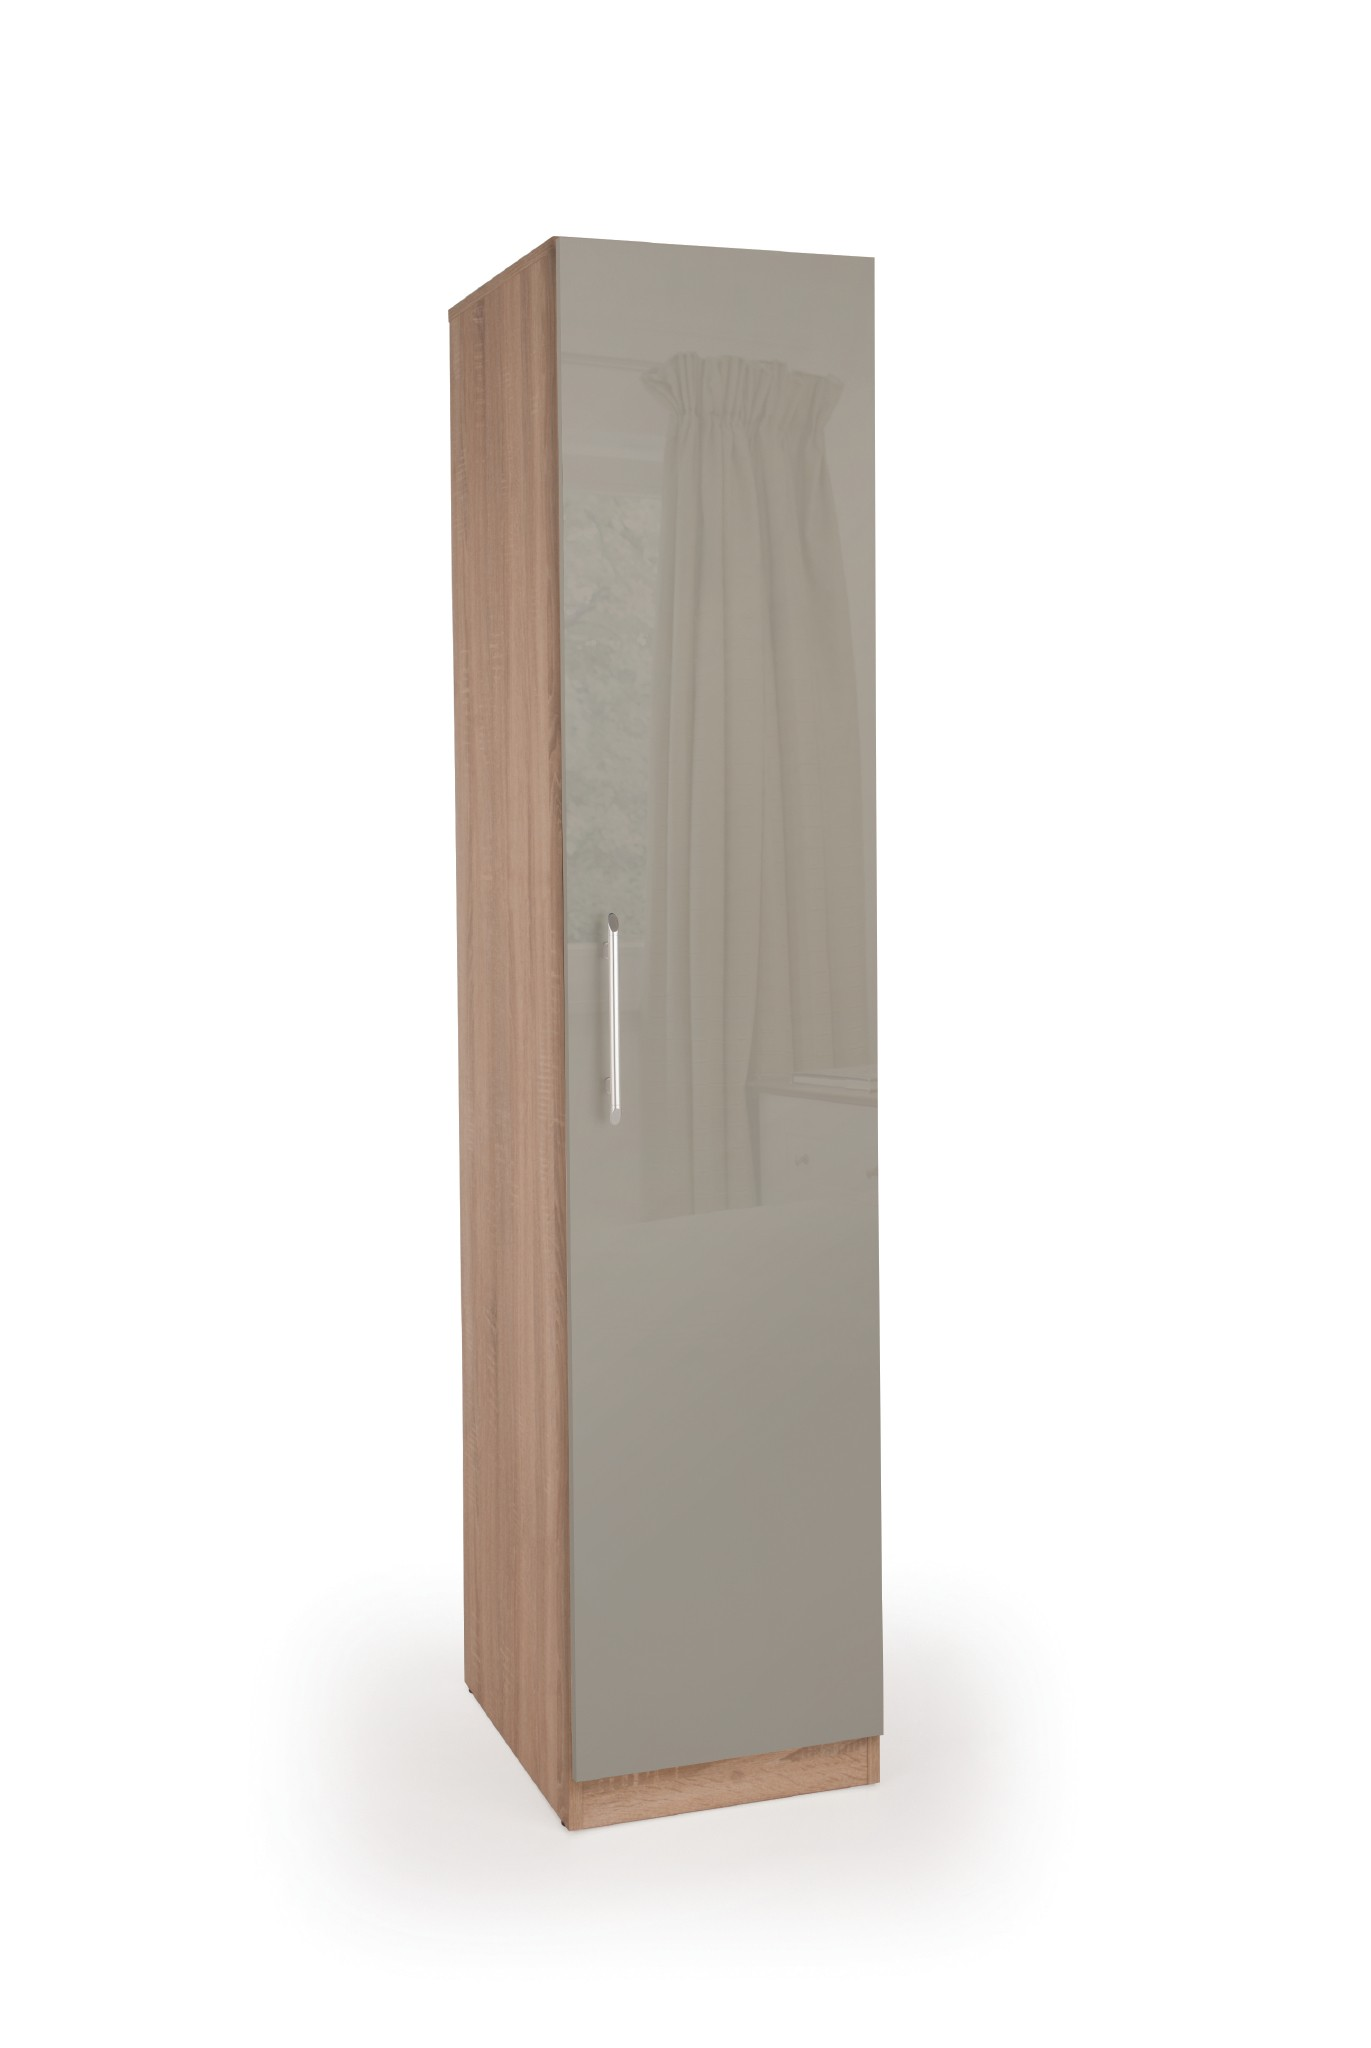 Connect Kensington 1 Door Wardrobe